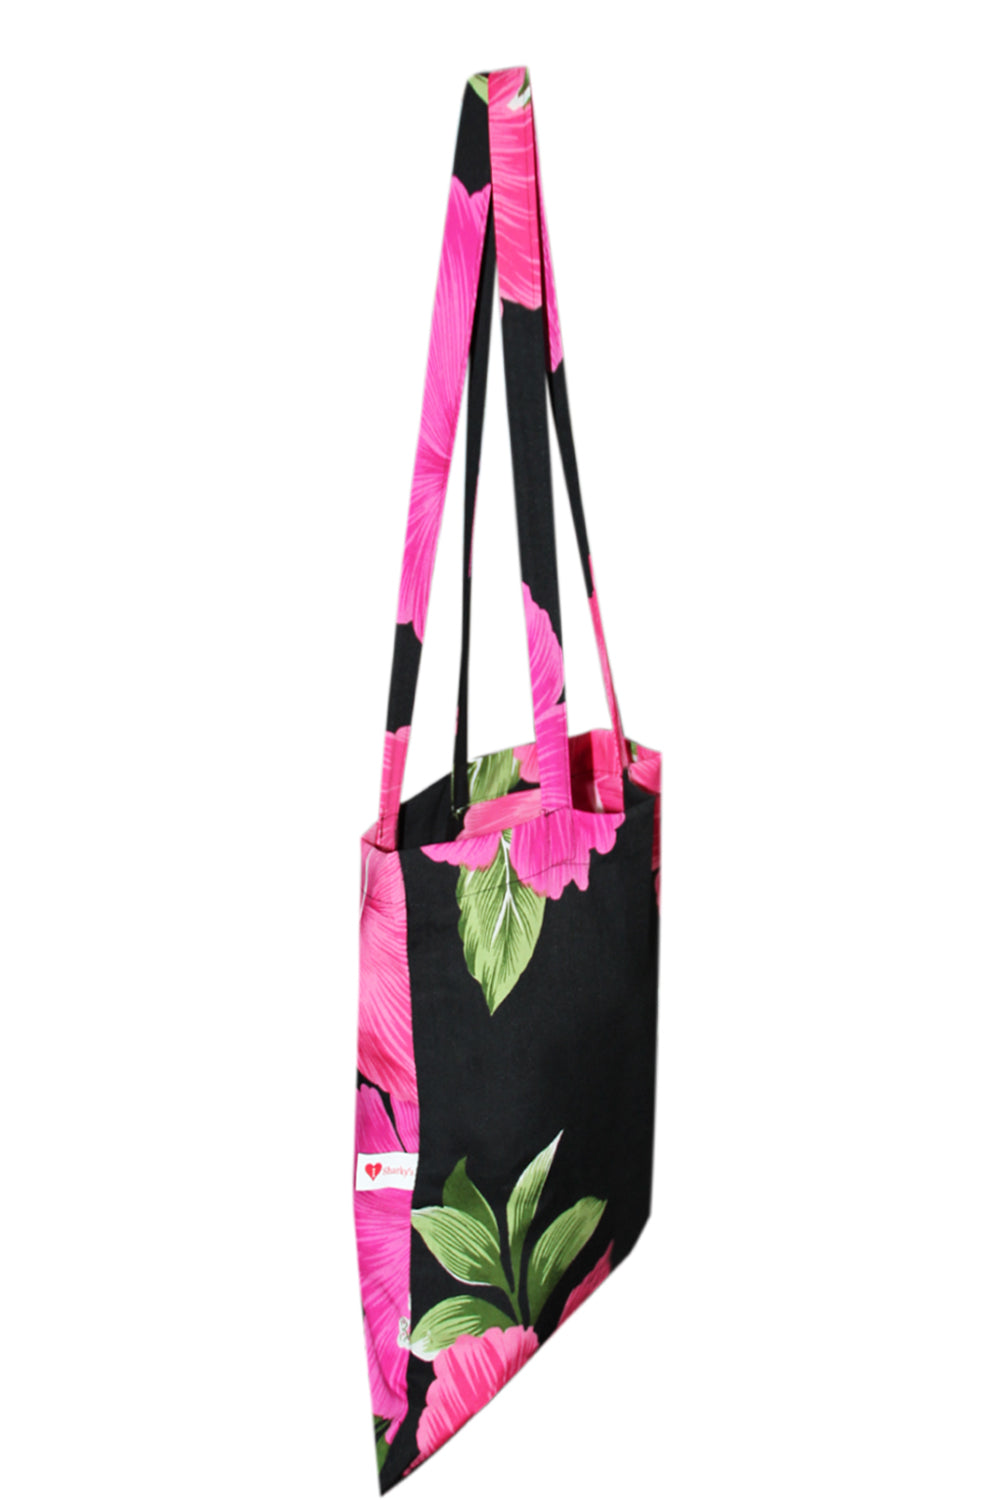 Tote Bag (Pack of 6 Assorted Flower Designs)